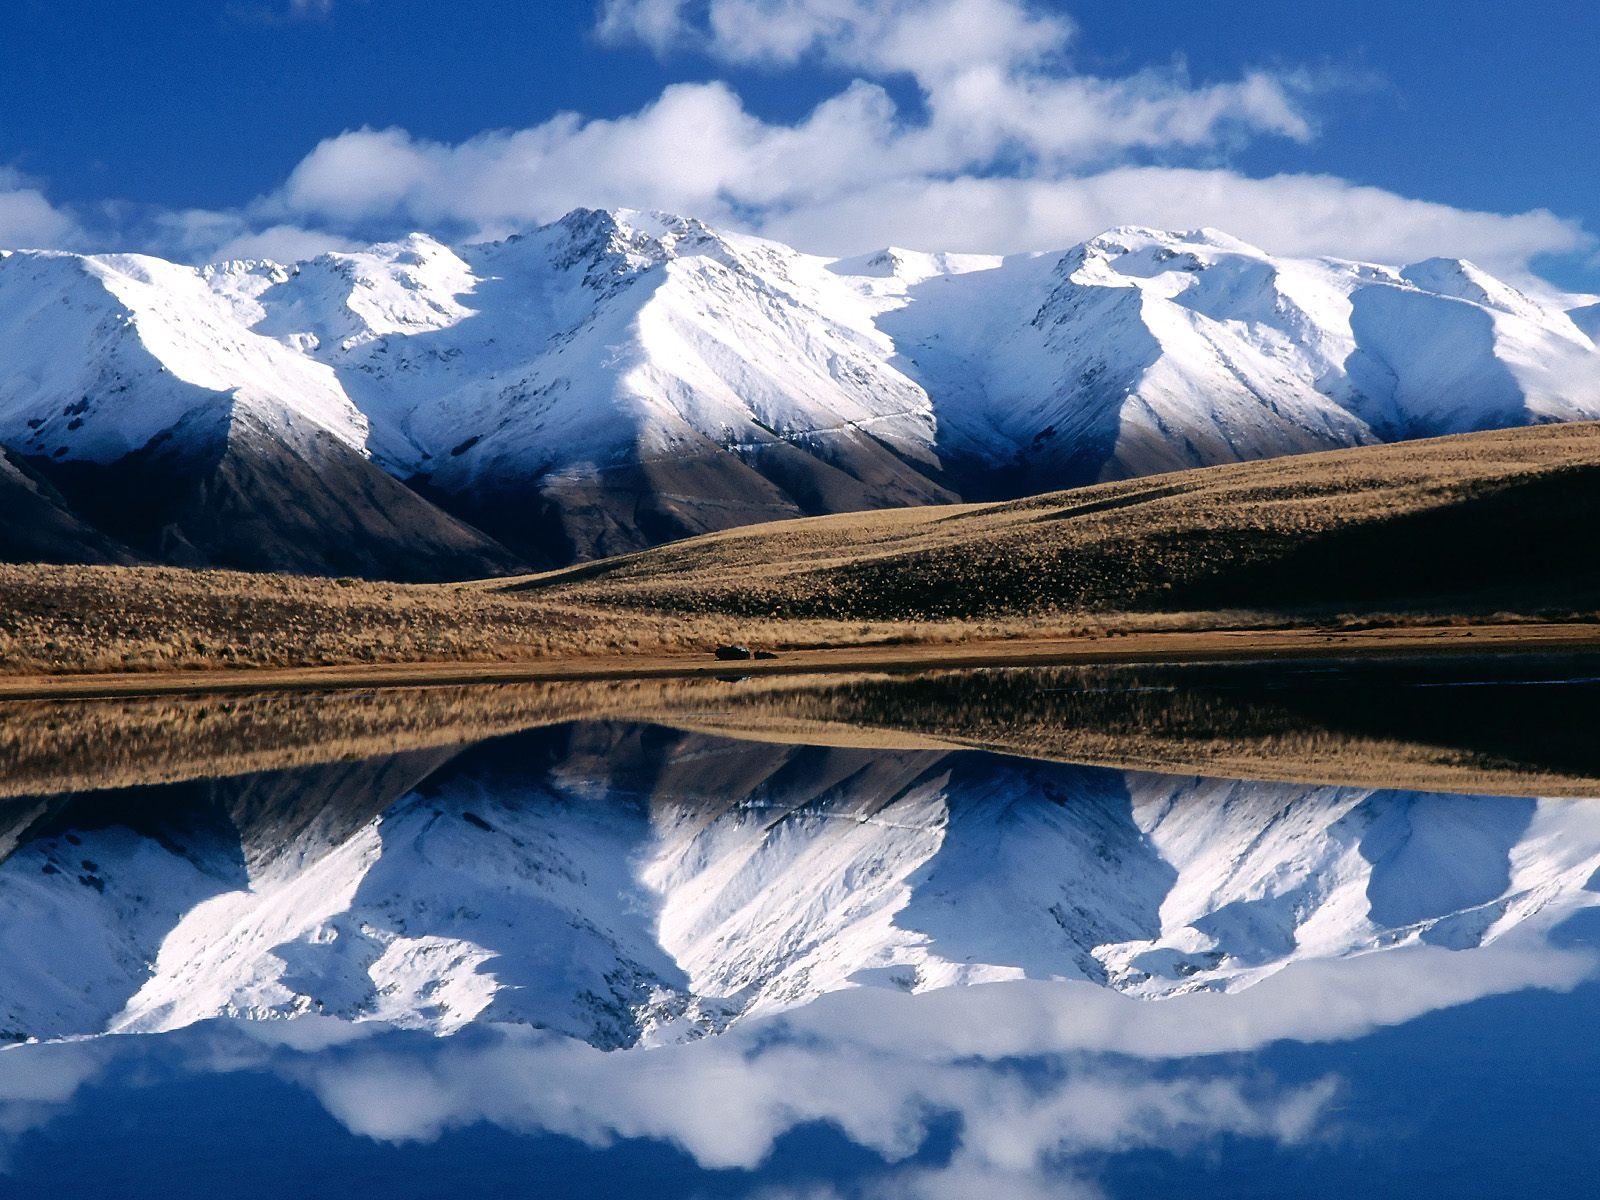 Newzealand Wallpaper: INDIA 365: New Zealand Country Nature Wallpapers